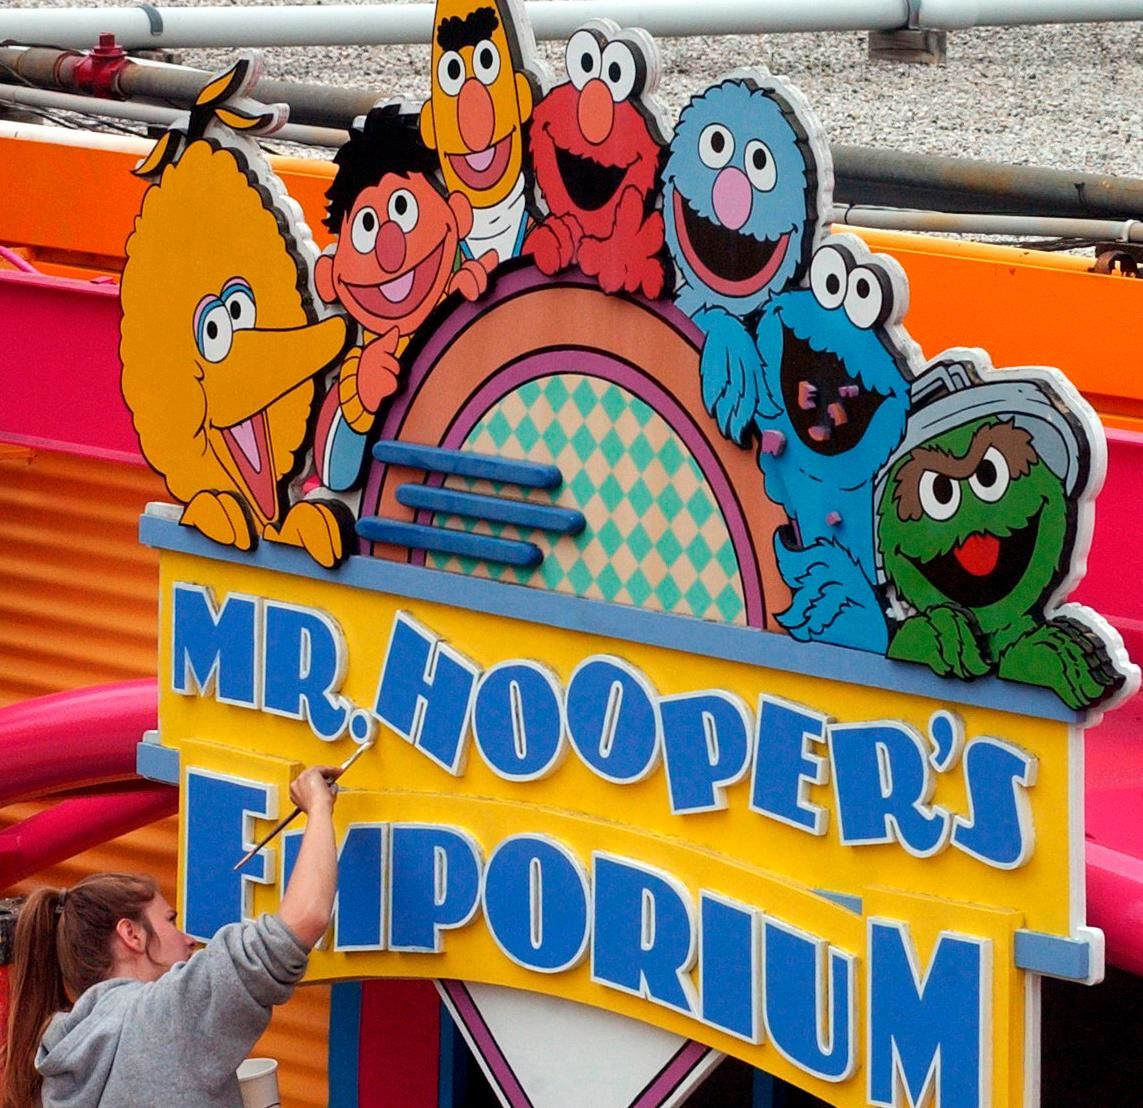 FILE - In this May 4, 2005, file photo, Tessa Meier puts some new paint on the sign outside Mr. Hooper's Emporium to get ready for opening day at Sesame Place in Langhorne, Pa. (Harry Sircely/Bucks County Courier Times via AP, File)